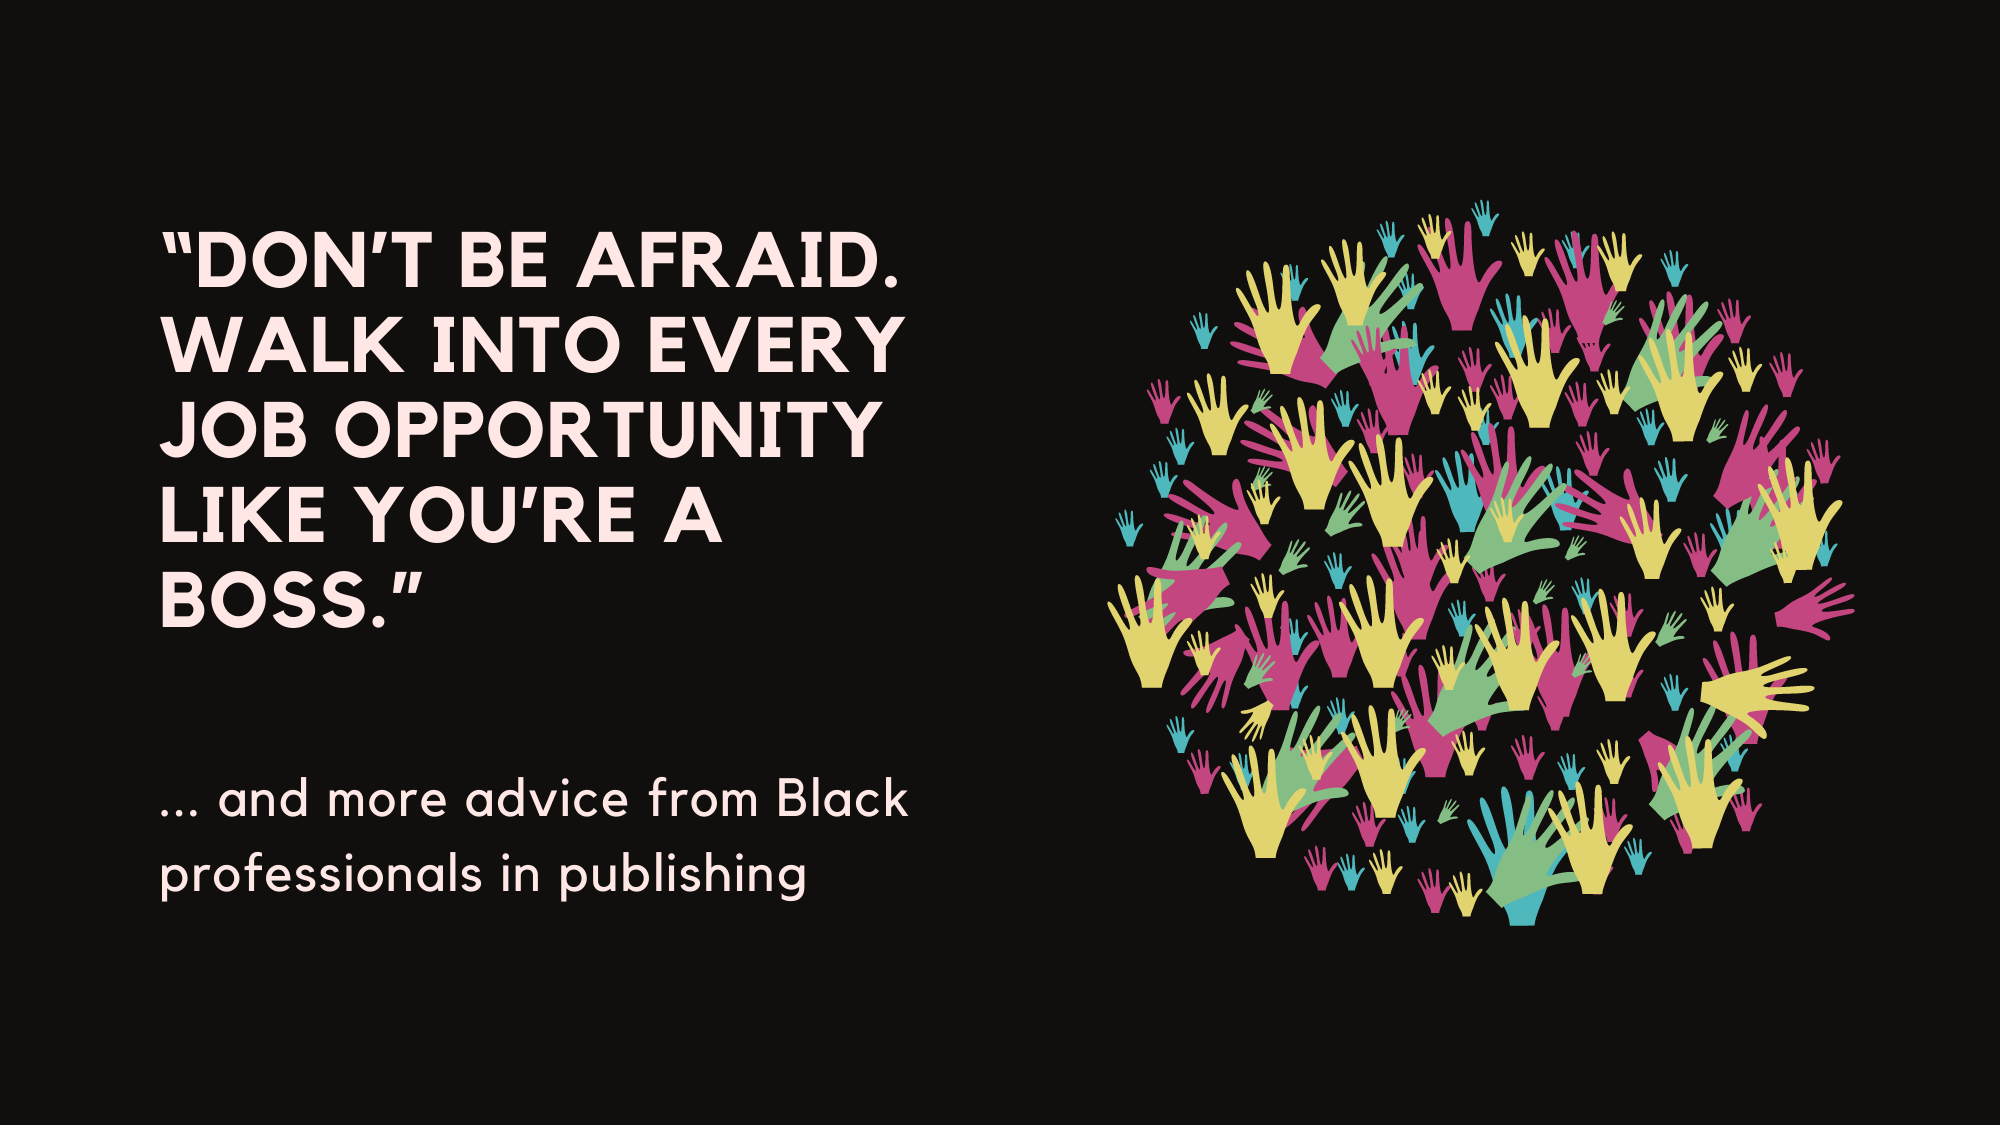 Don't be afraid. Walk into every job opportunity like you're the boss. And more advice from Black professionals in publishing.